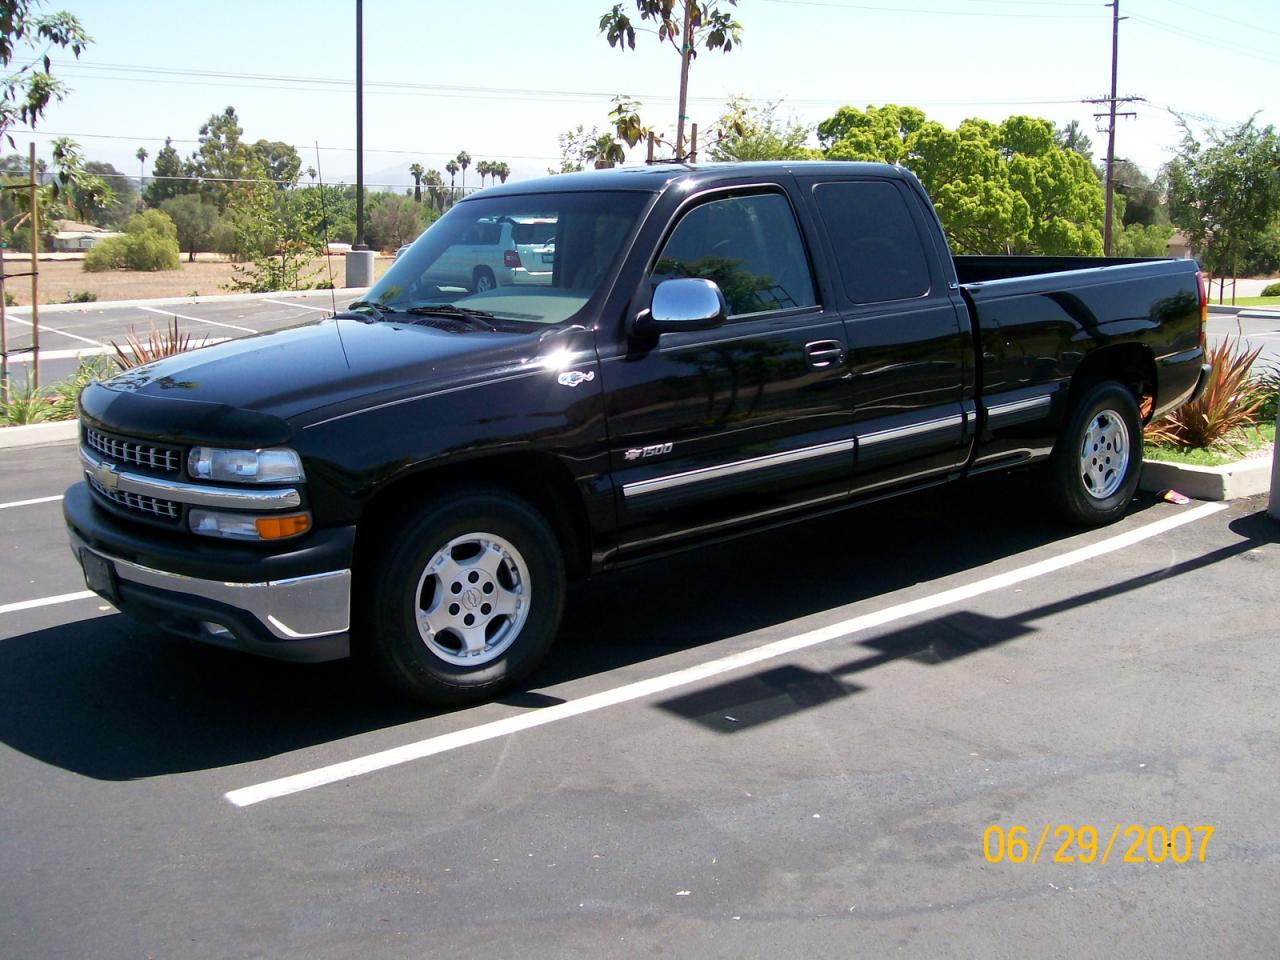 2000 chevrolet silverado 1500 information and photos zombiedrive. Cars Review. Best American Auto & Cars Review